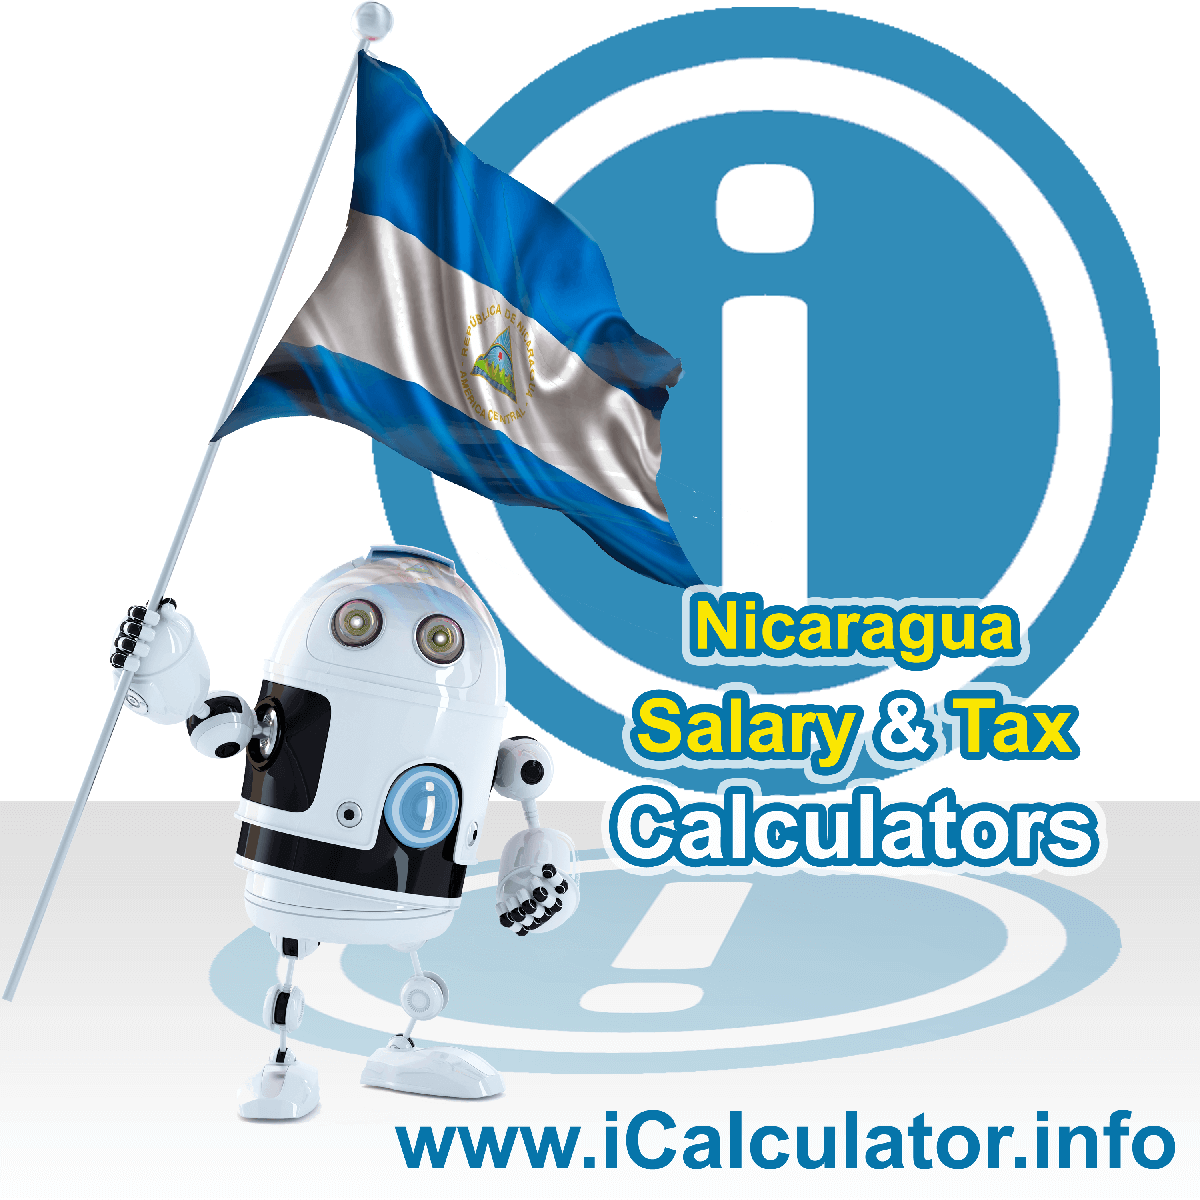 Nicaragua Salary Calculator. This image shows the Nicaraguaese flag and information relating to the tax formula for the Nicaragua Tax Calculator